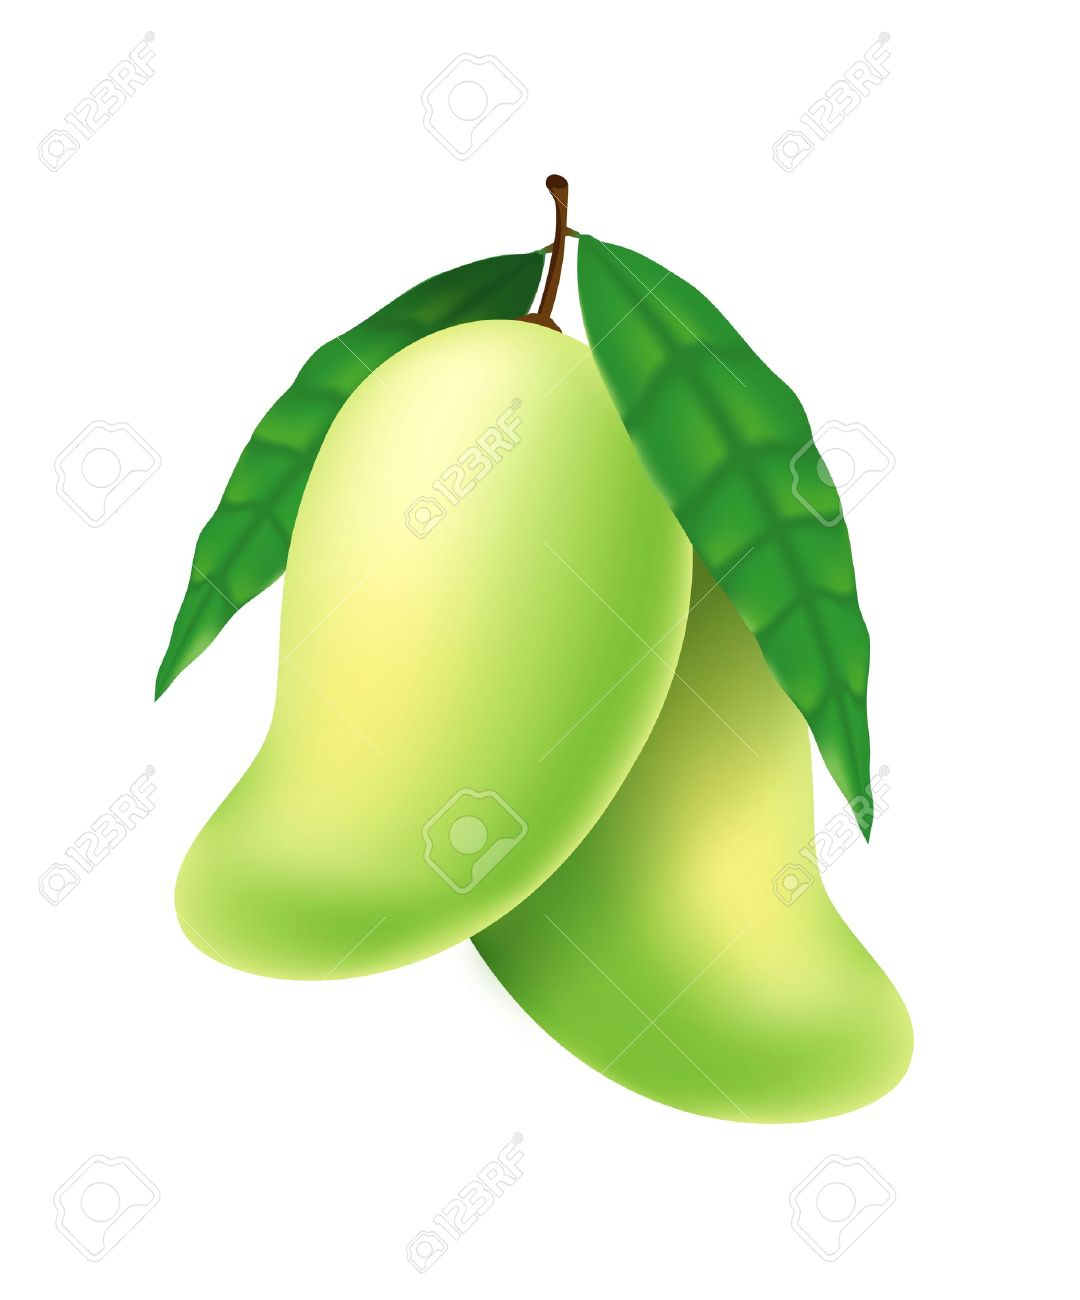 Unripe clipart 20 free Cliparts   Download images on ...